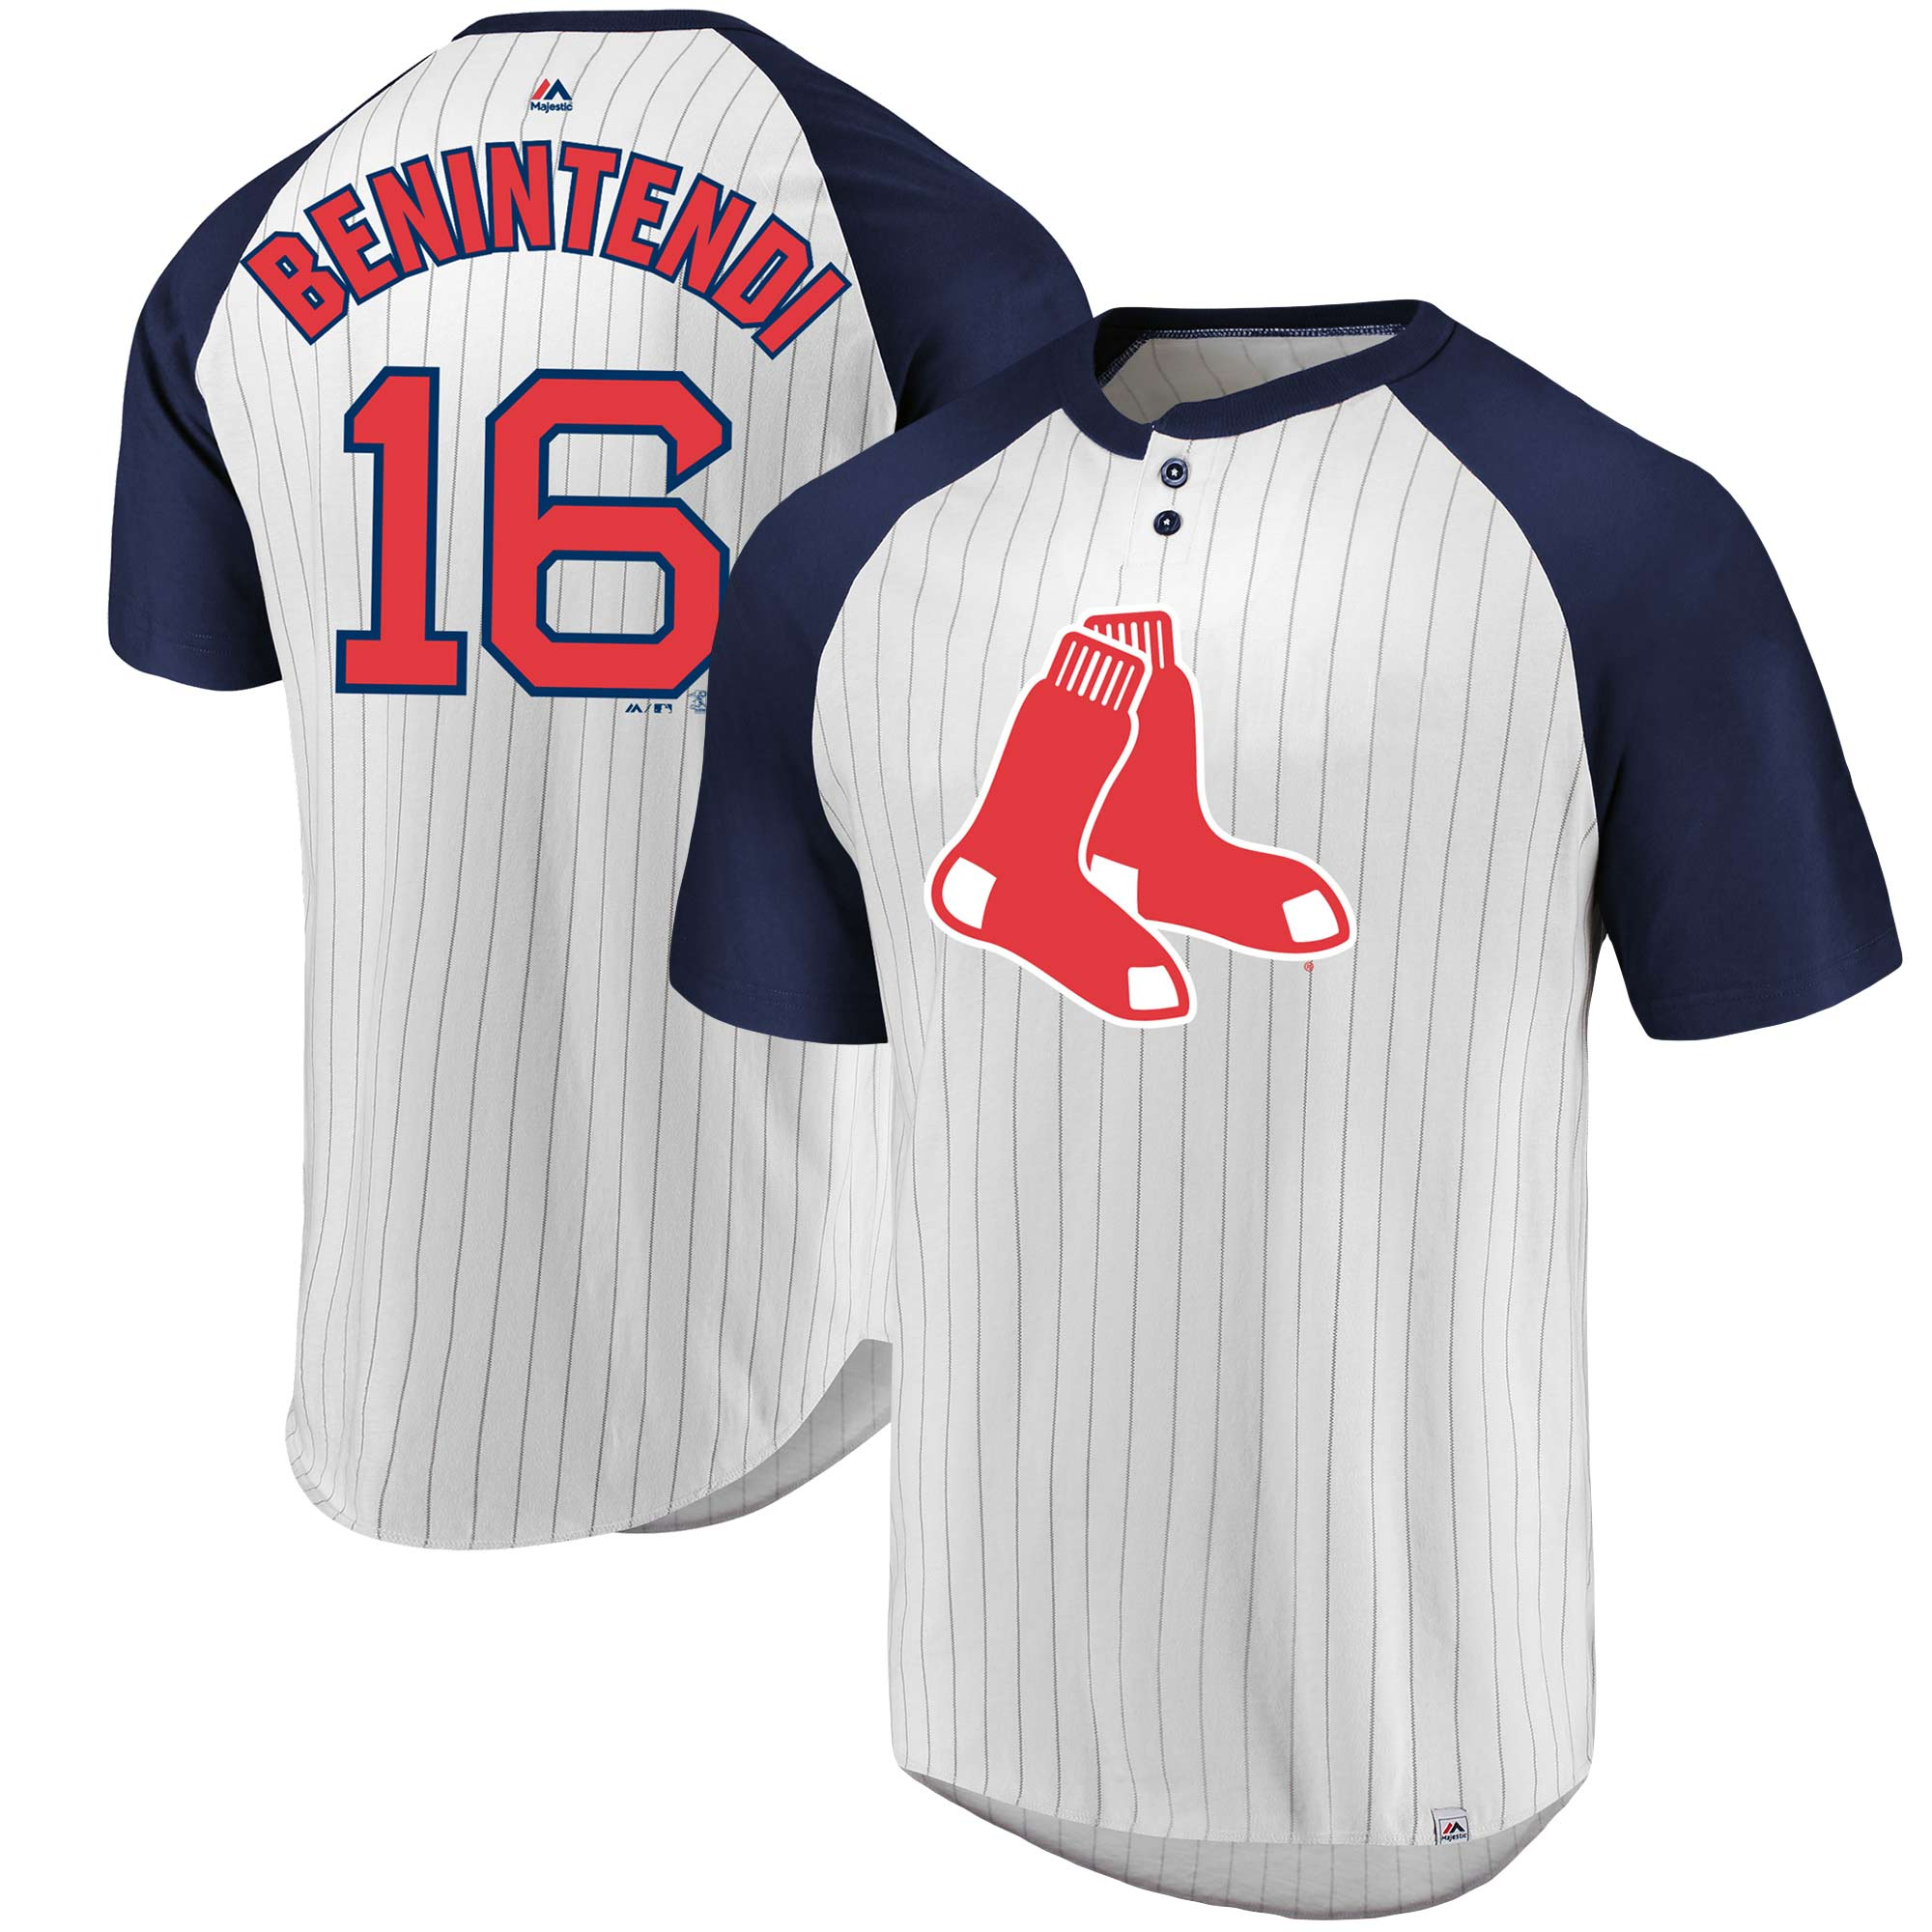 Andrew Benintendi Boston Red Sox Majestic Everything in Order Pinstripe Name & Number T-Shirt - White/Navy